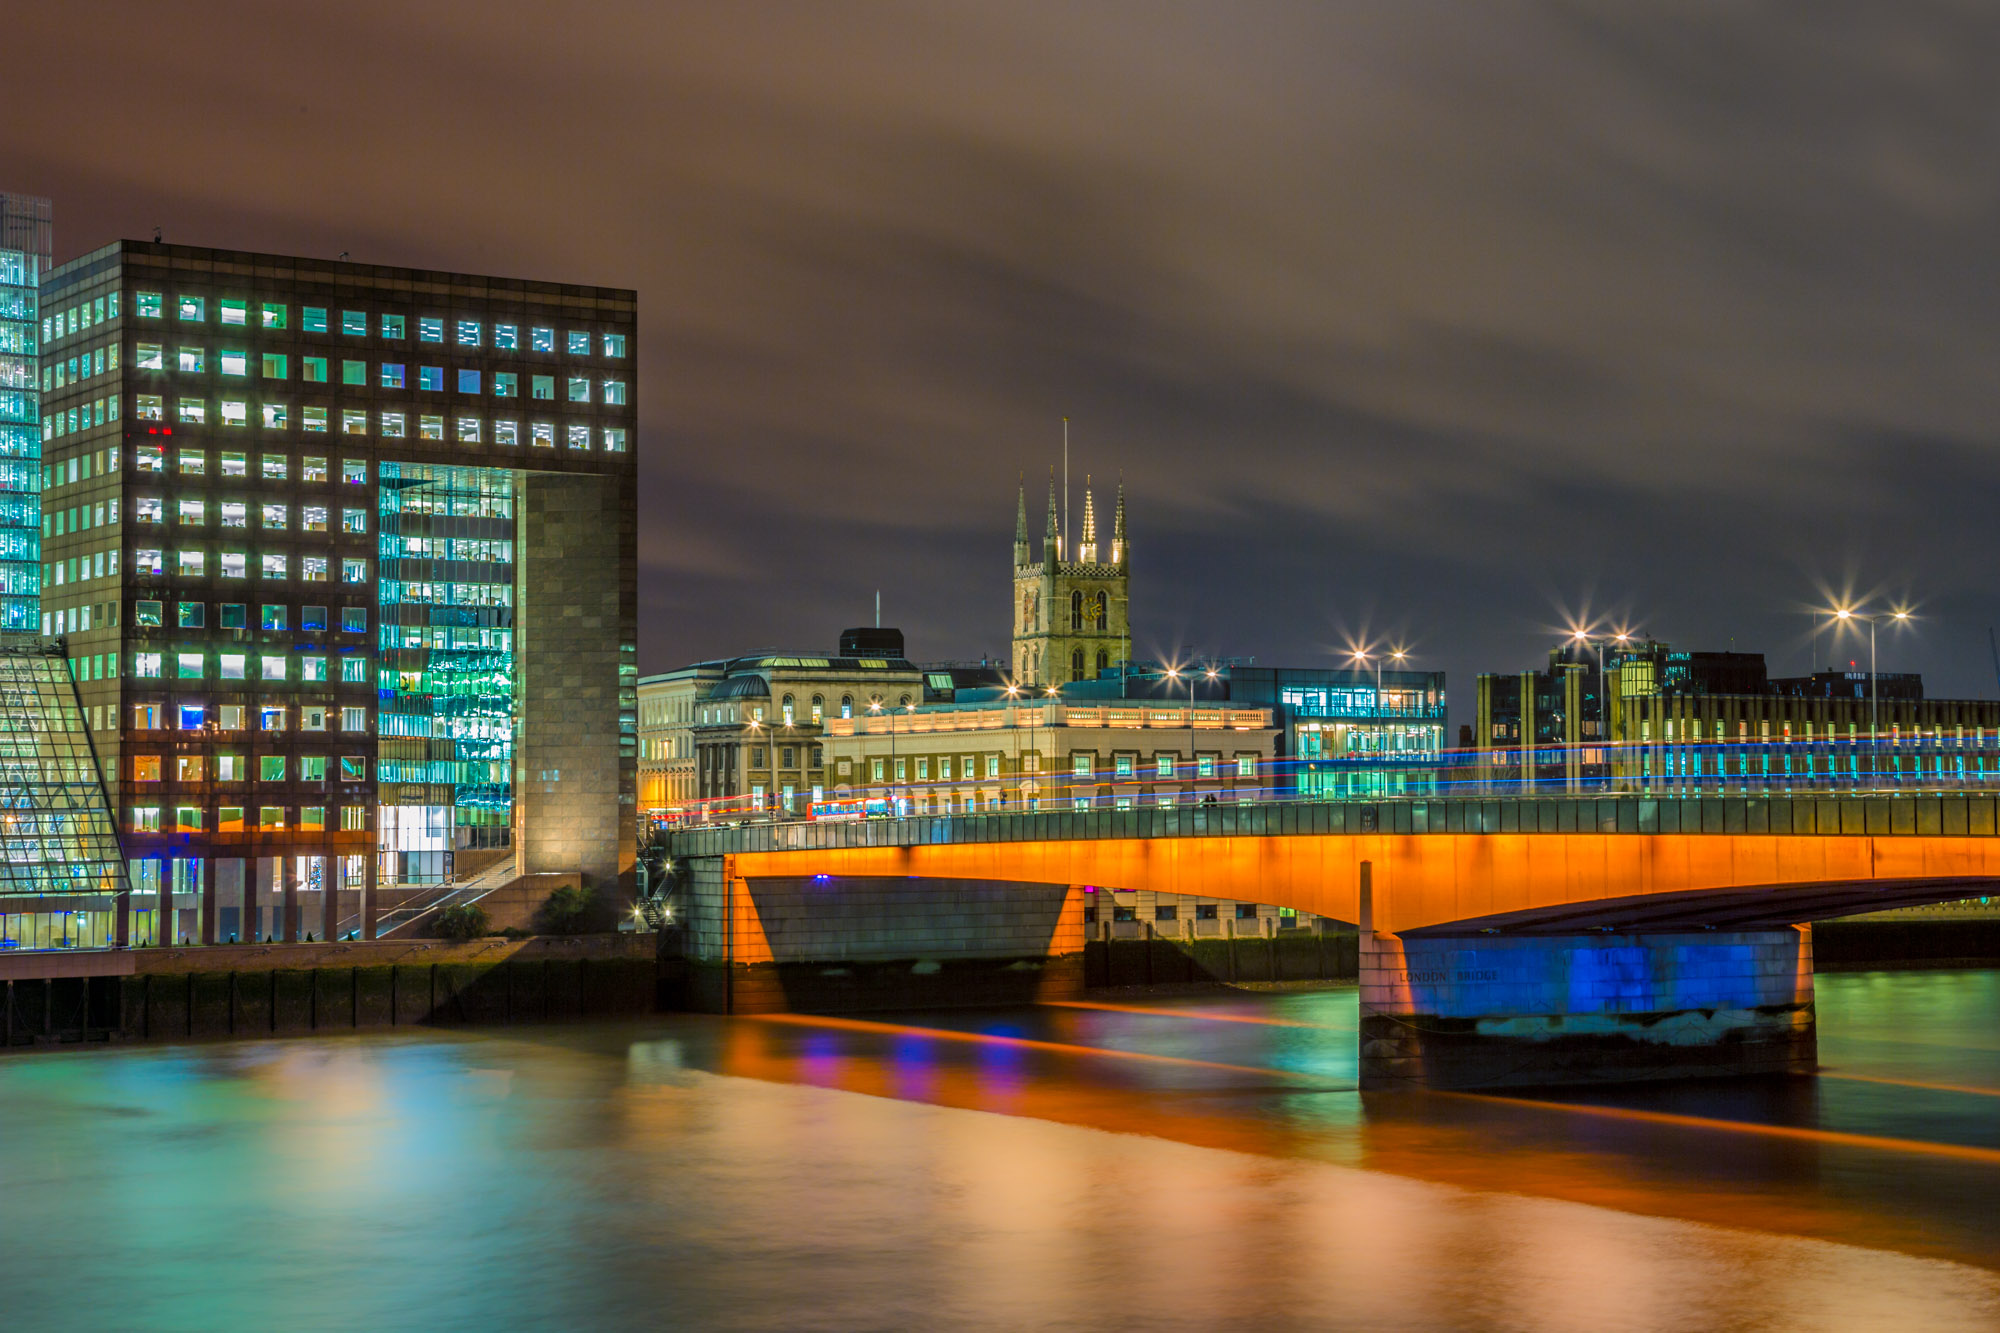 long exposure night photography of London Bridge and Southwark Cathedral viewed from above in lights